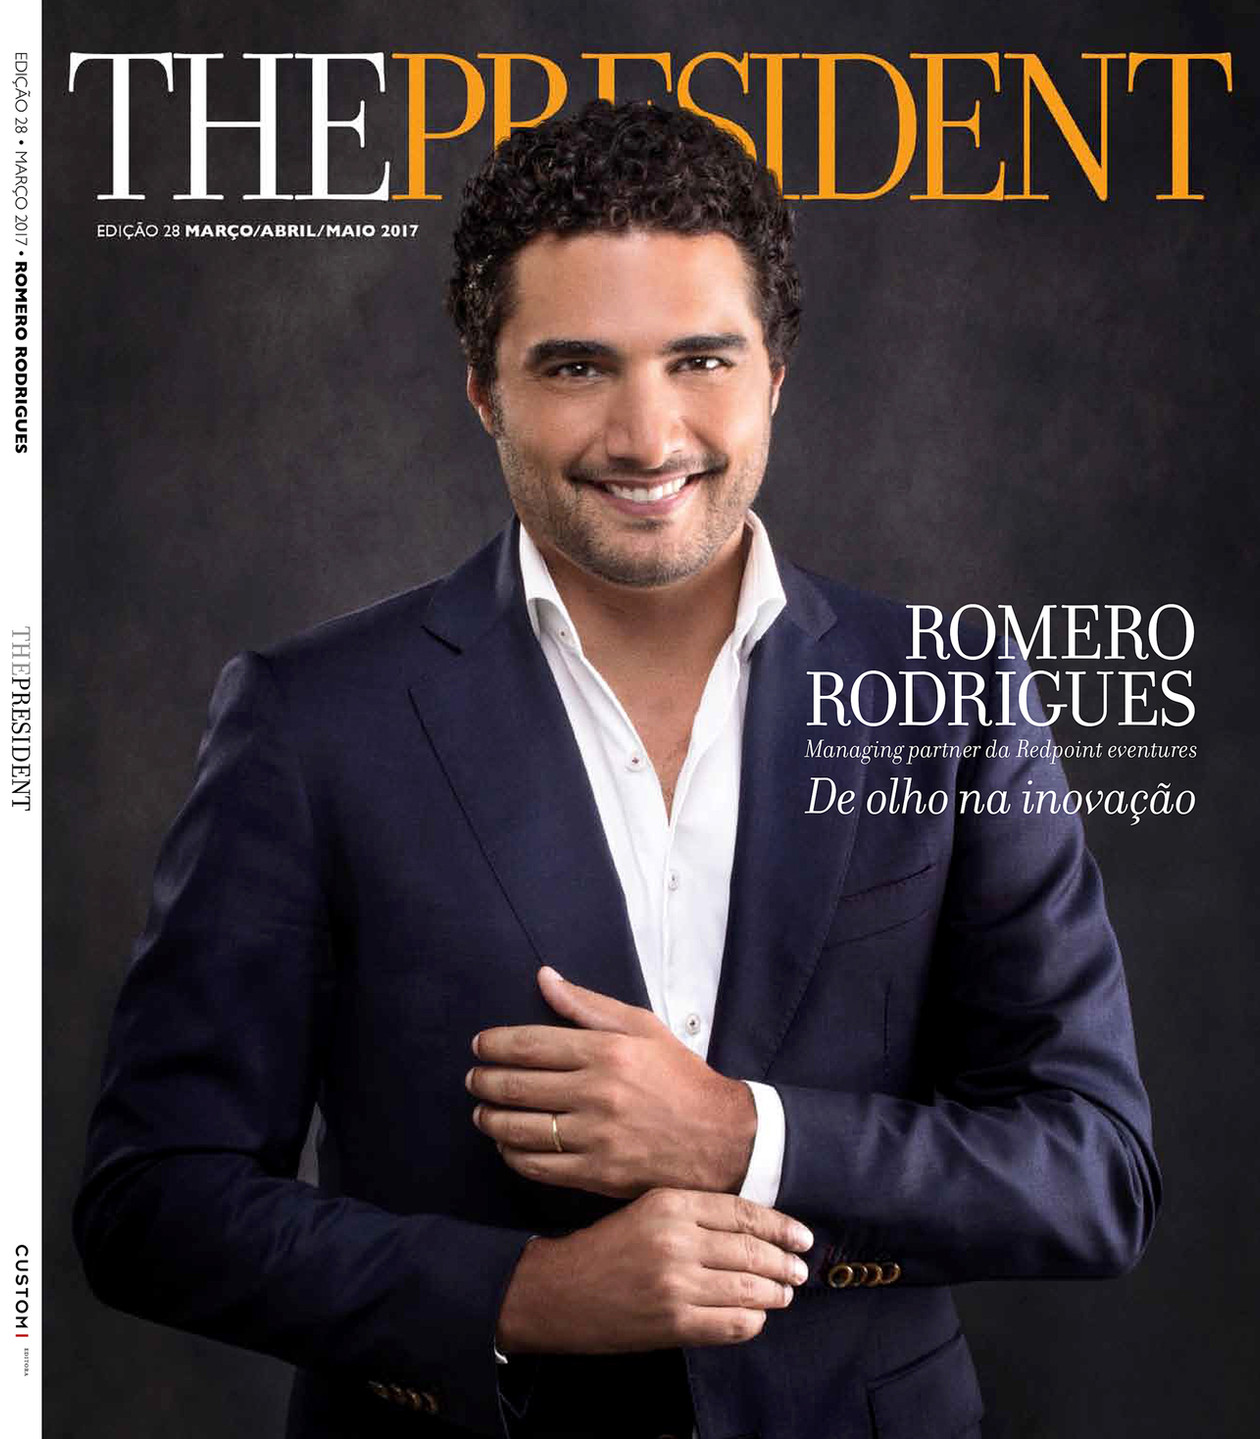 Editorial portrait for The President magazine